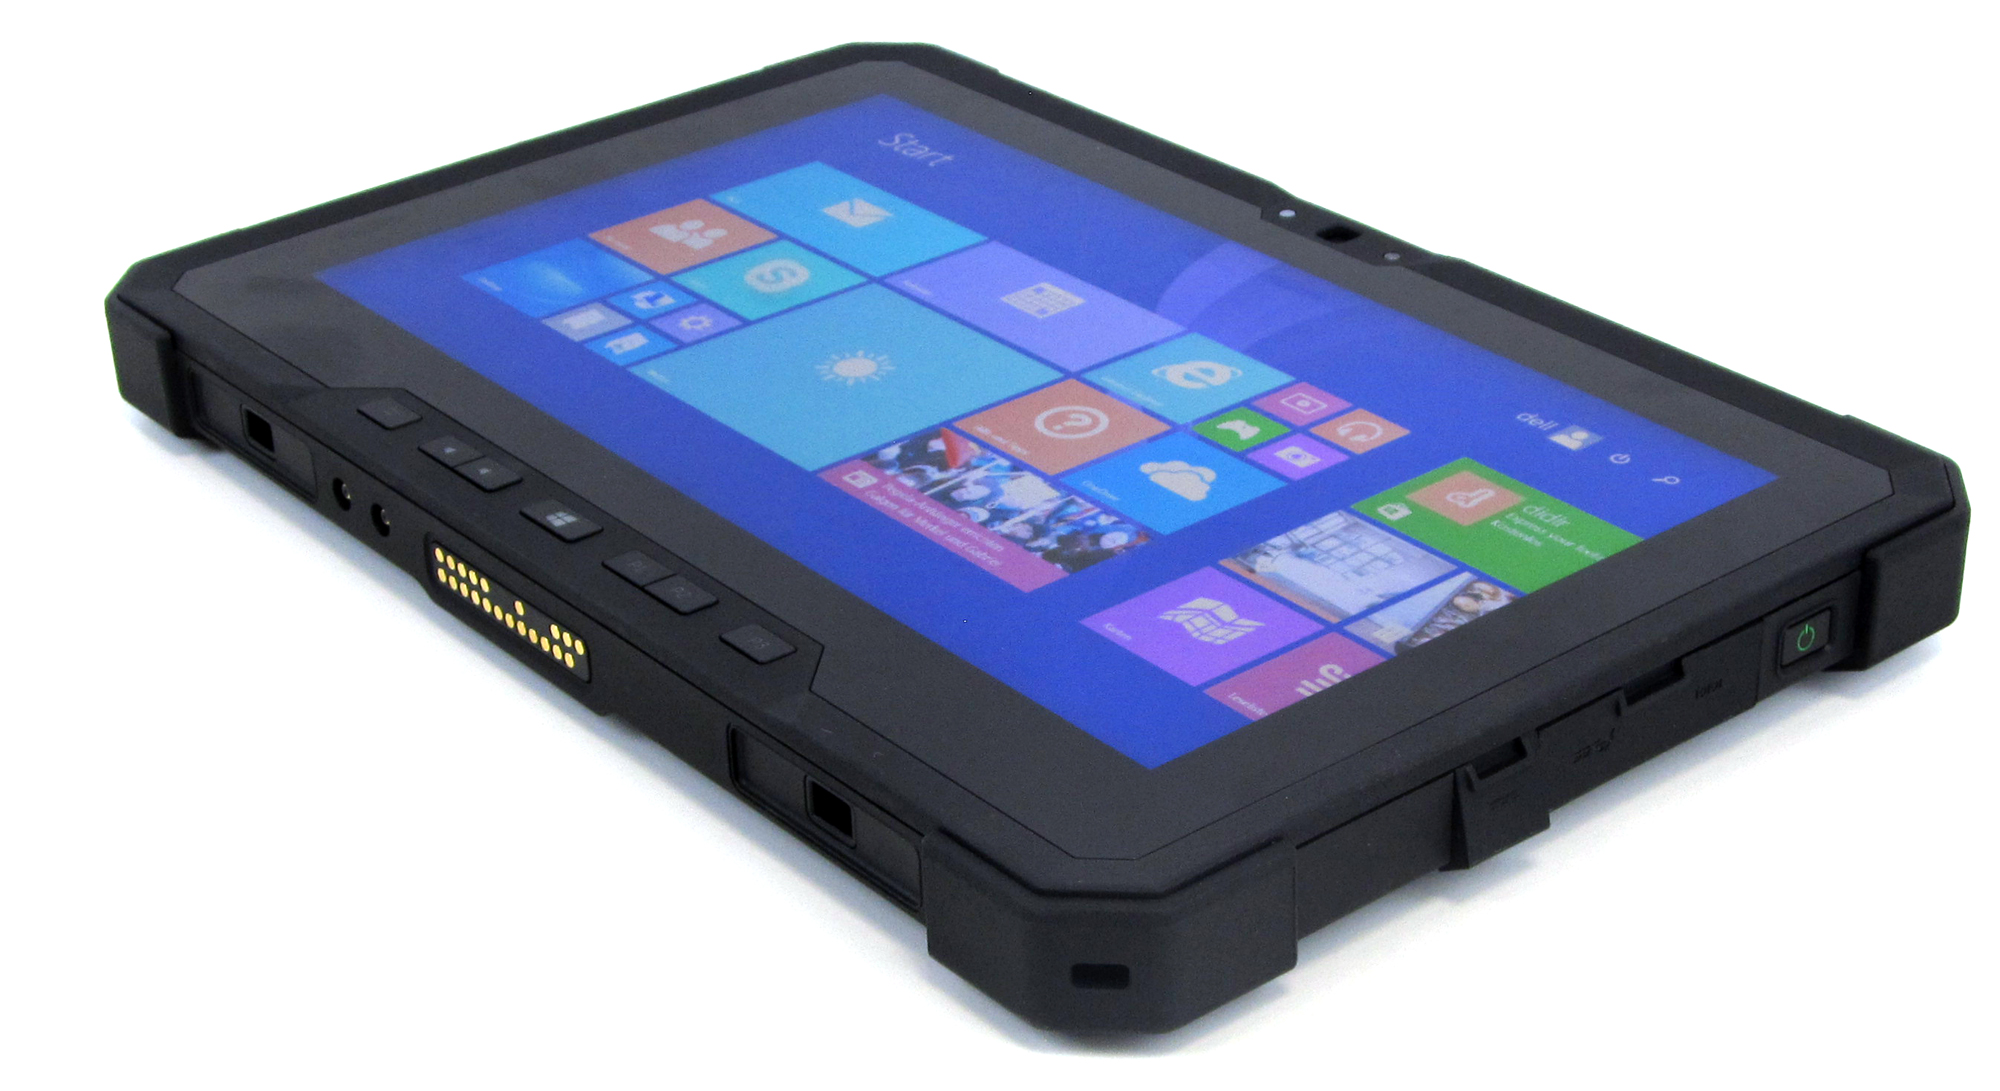 latitude 12 rugged tablet von dell mit wechselbaren akkus. Black Bedroom Furniture Sets. Home Design Ideas